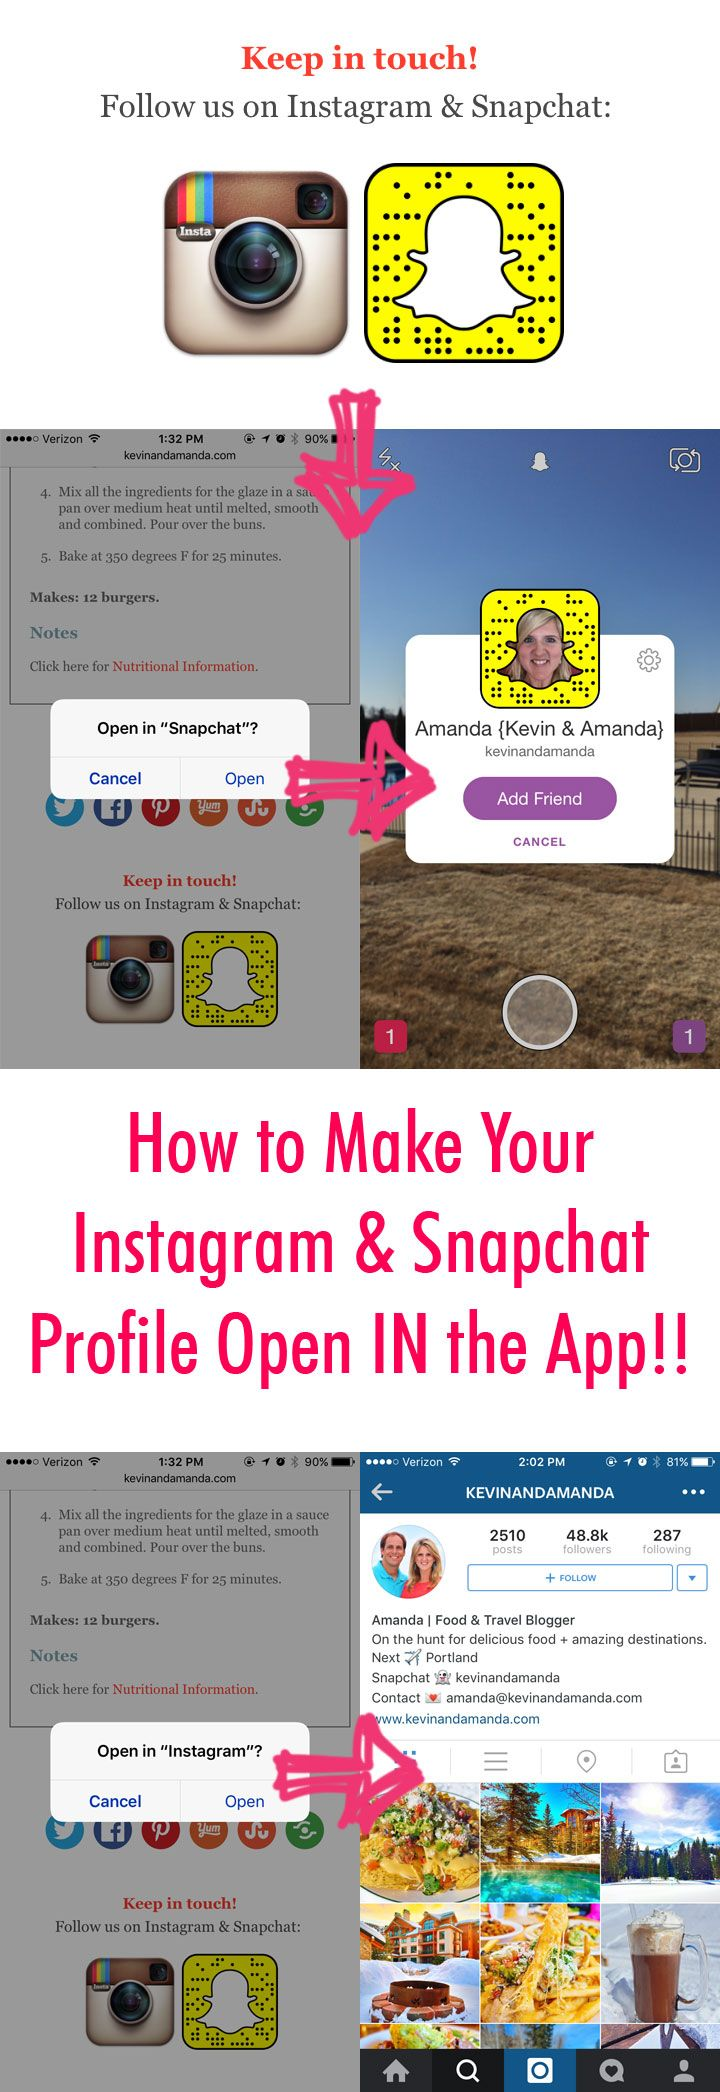 How to link to your Instagram and Snapchat profiles so they open IN the app!!